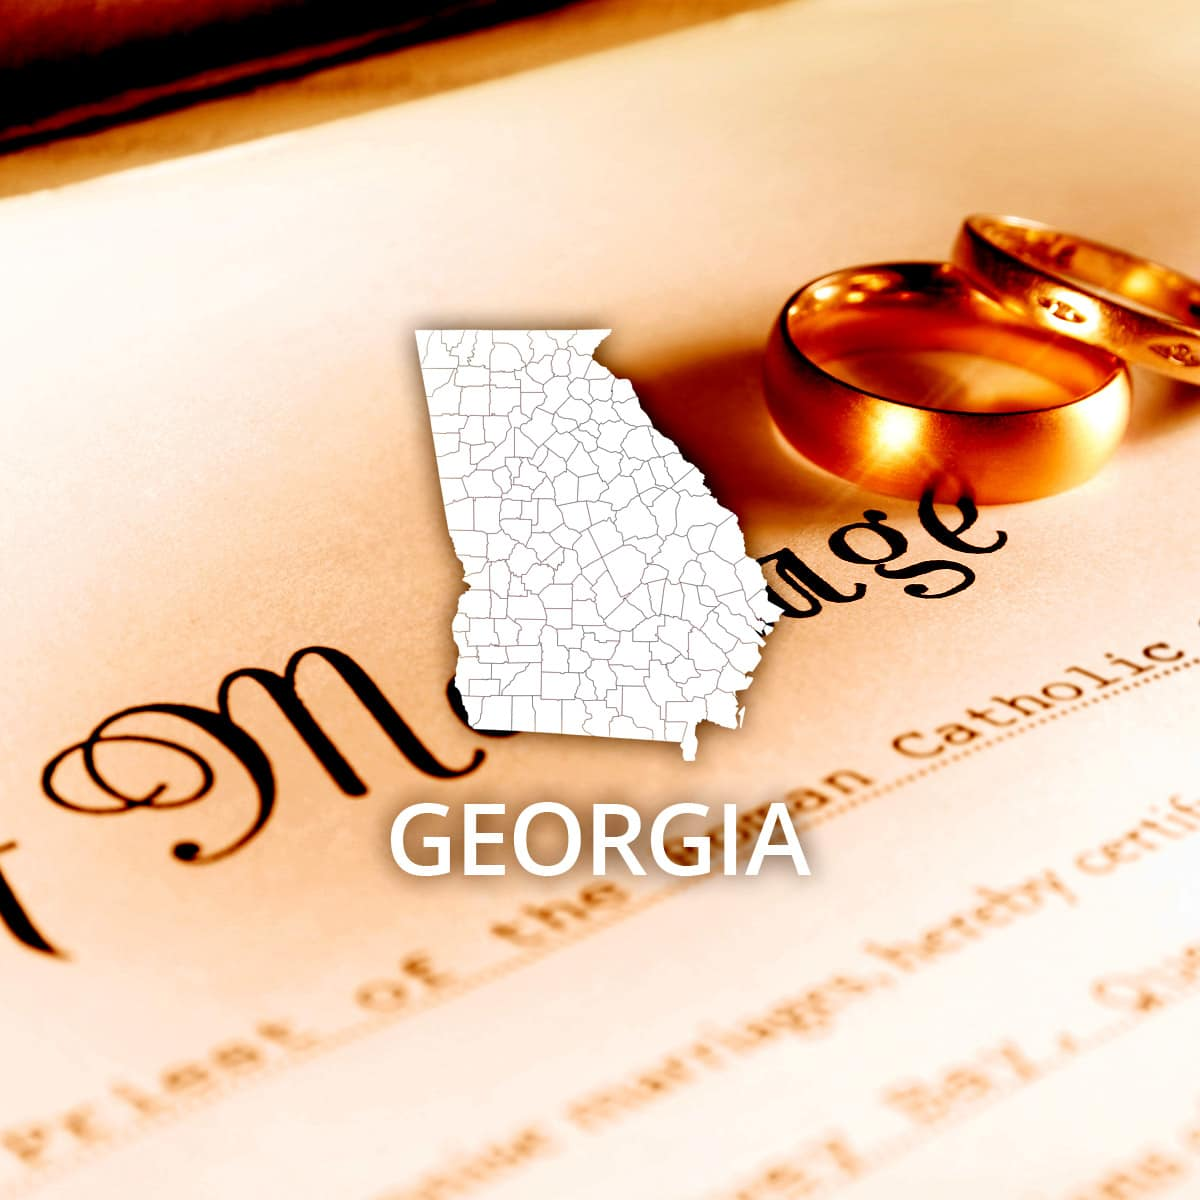 Where to Obtain a Georgia Marriage Certificate